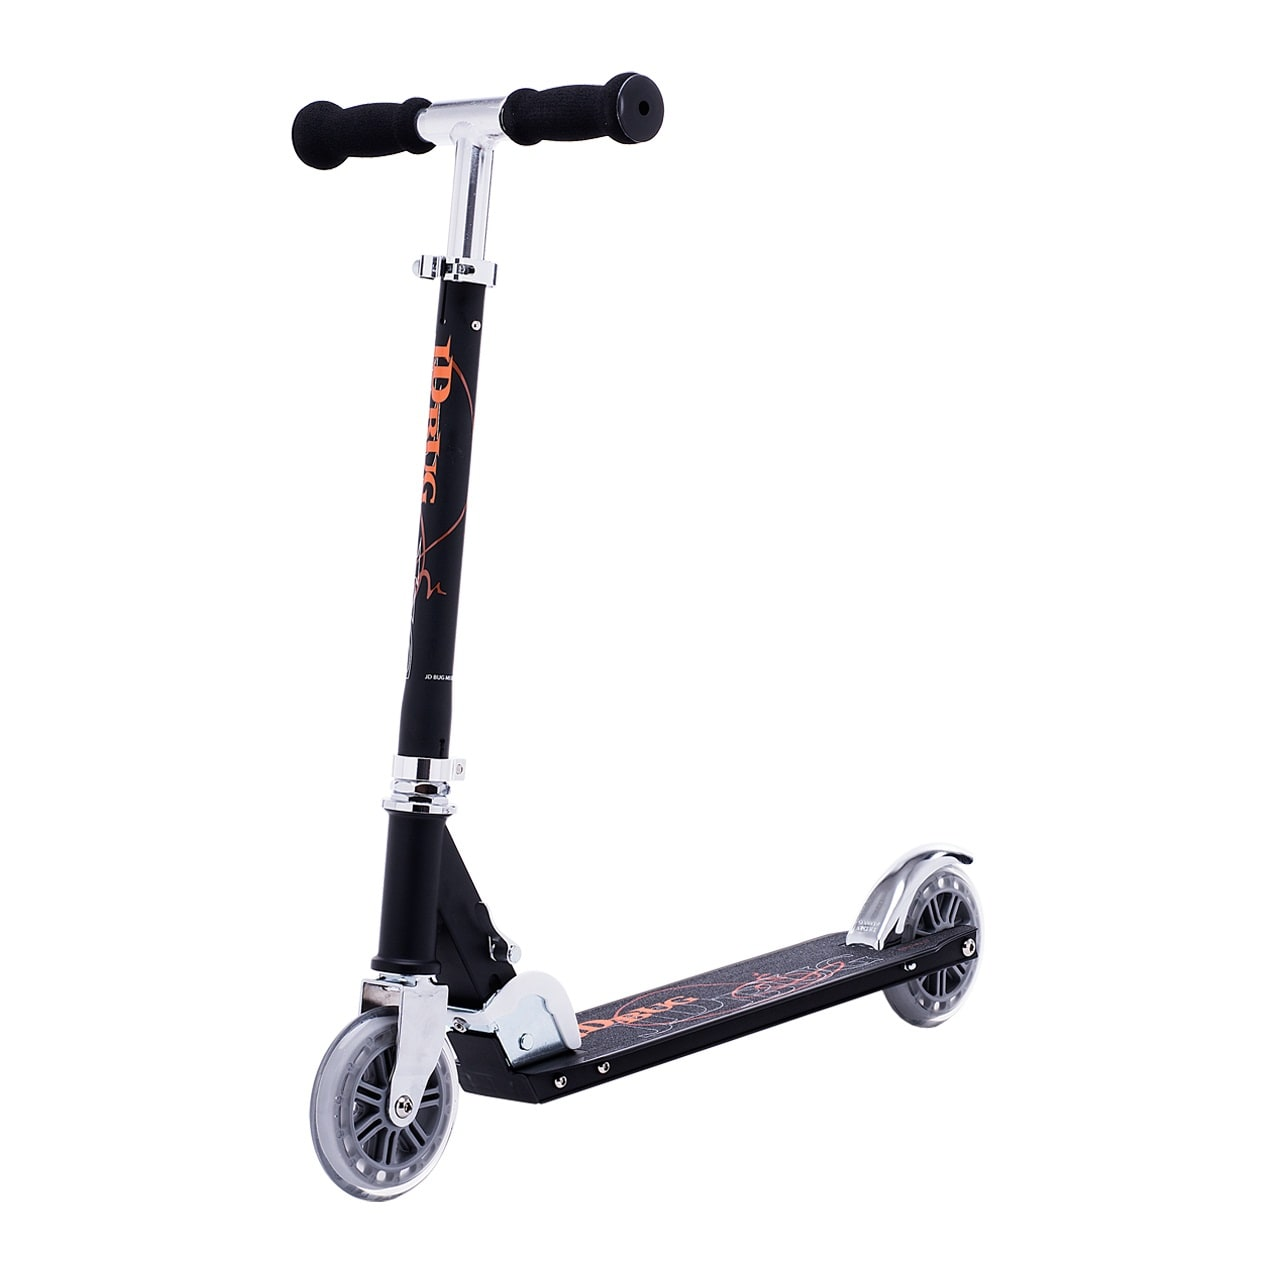 JD Bug Classic Street 120 Folding Scooter  Matt Black